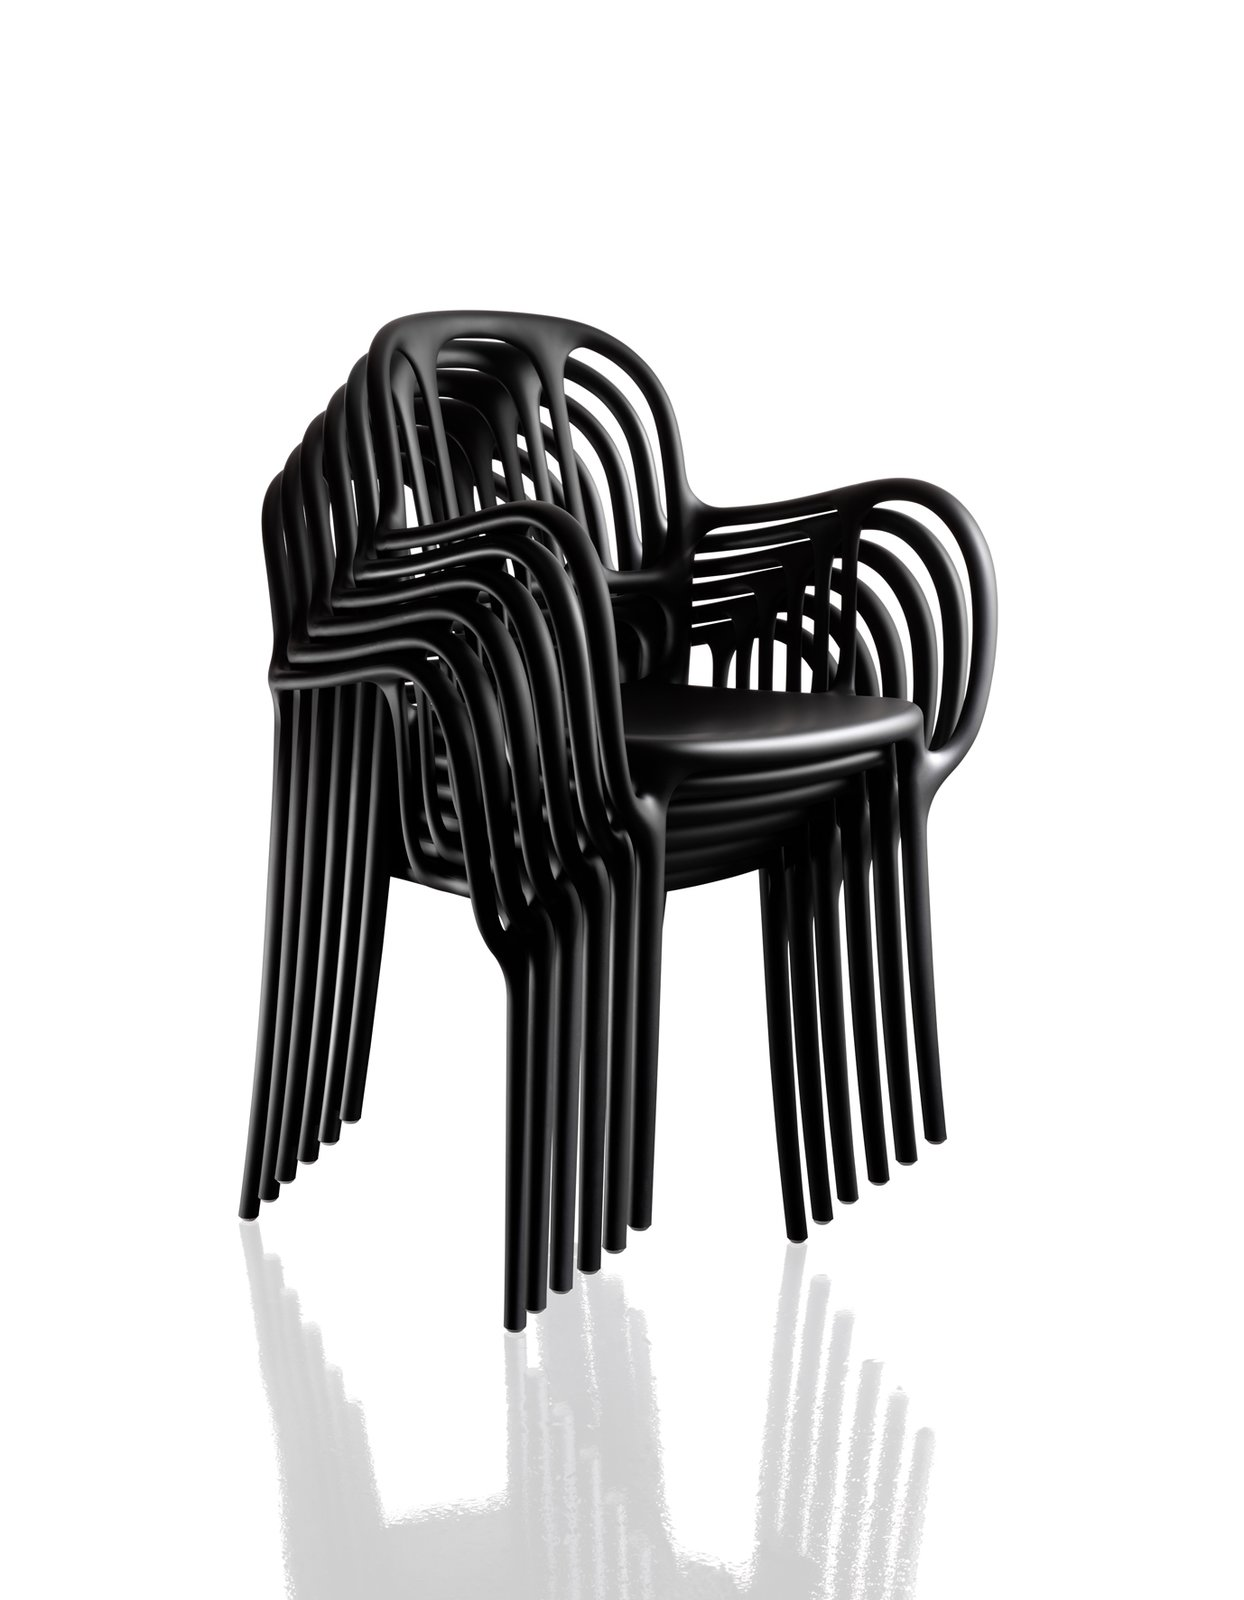 Stash a stack of Milà chairs in the hall closet for extra seating. Jaime Haydn's design for Magis, made of plastic, achieves its sculptural form through gas-injection molding.  Photo 7 of 9 in New Products to Solve Your Tiny Apartment Woes